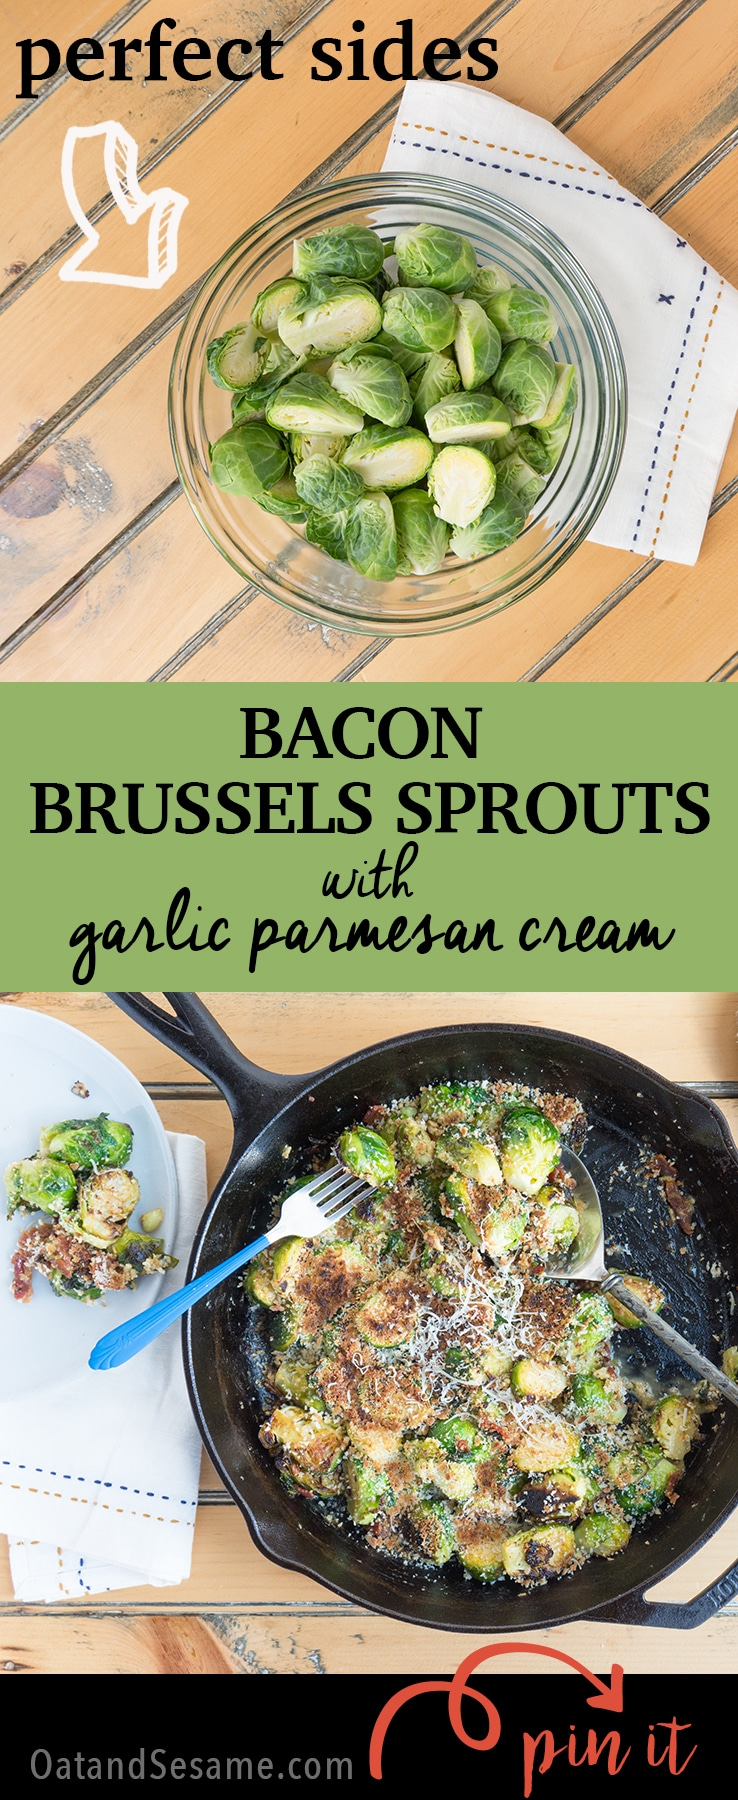 Bacon Brussels Sprouts with Garlic Parmesan Cream. A delicious side dish for Thanksgiving or any Fall gathering. Skillet roasted and done in under 30 min | #BRUSSELS | #SIDES | #THANKSGIVING | #Recipes at OatandSesame.com